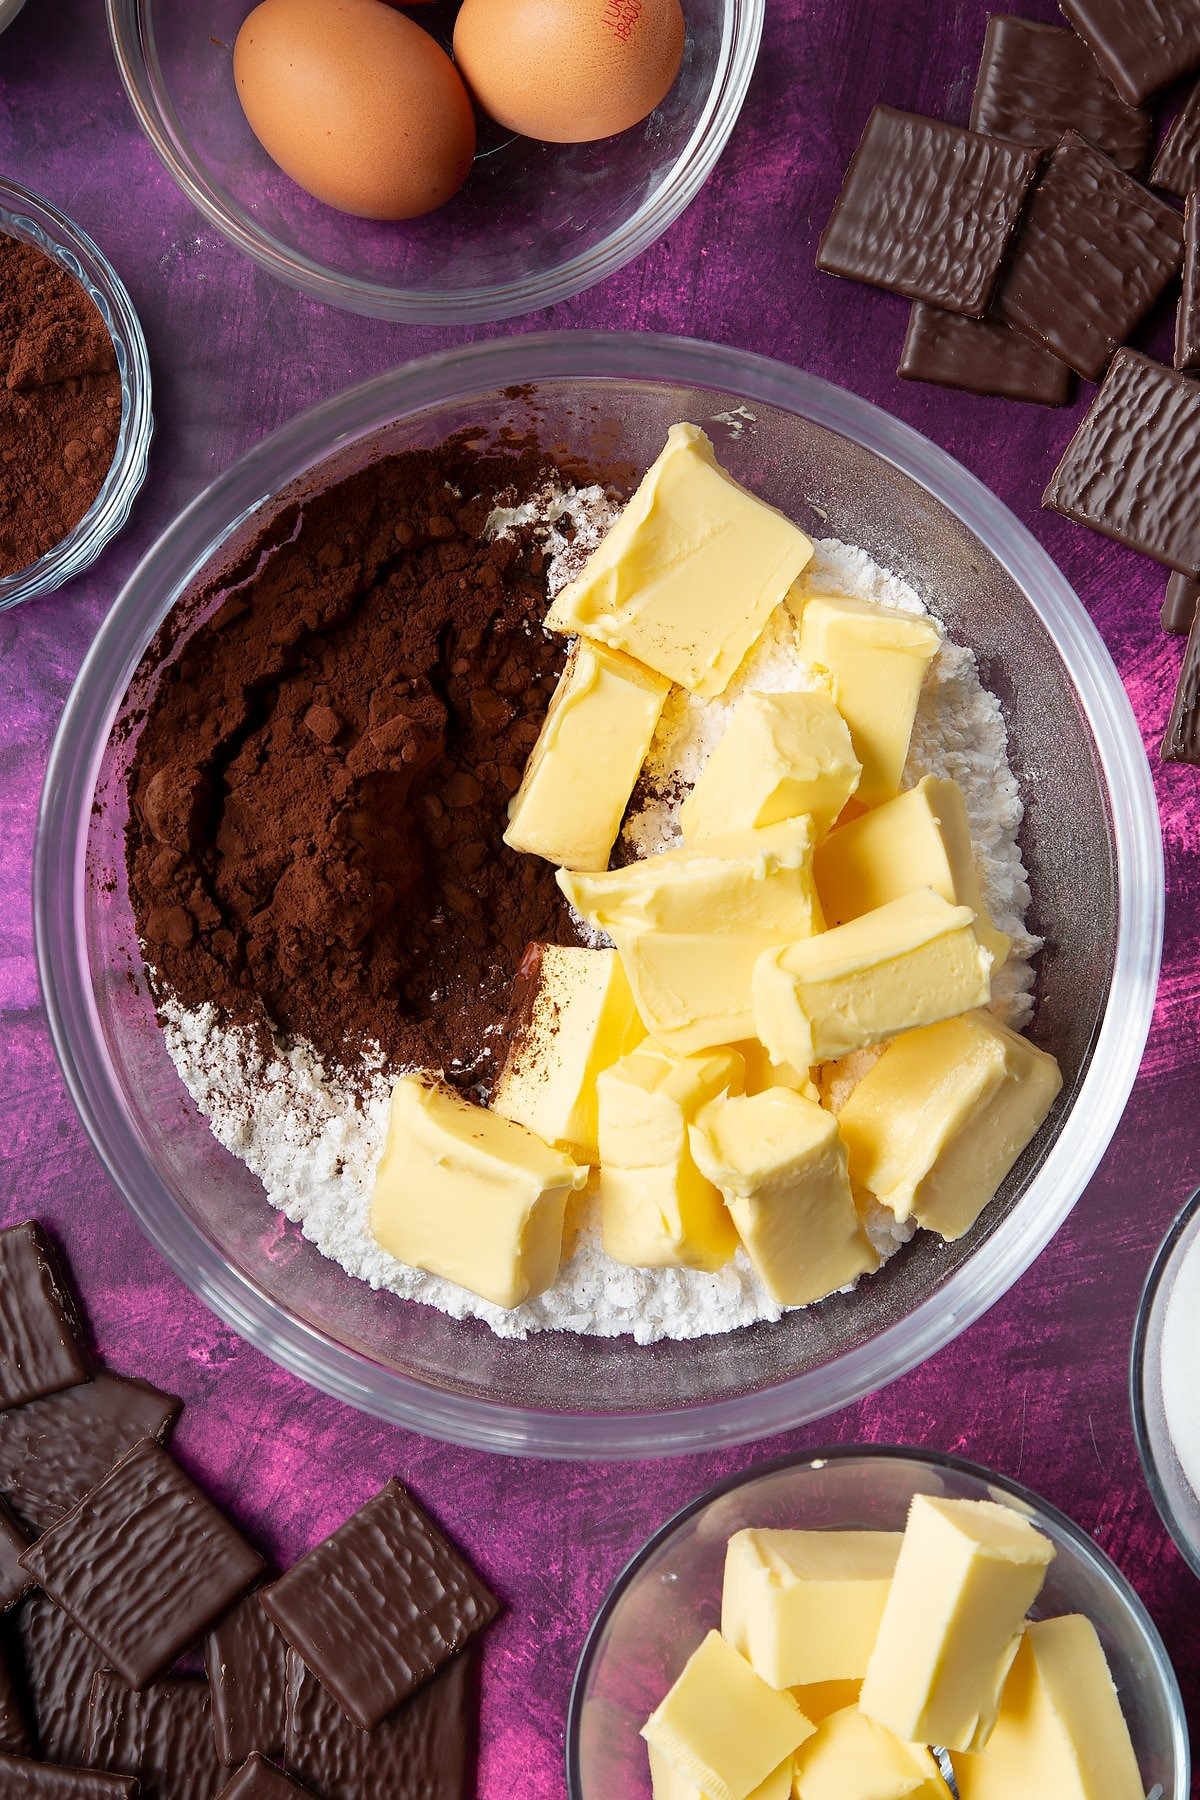 Icing sugar, butter and cocoa in a glass mixing bowl. Ingredients to make After Eight cupcakes surround the bowl.